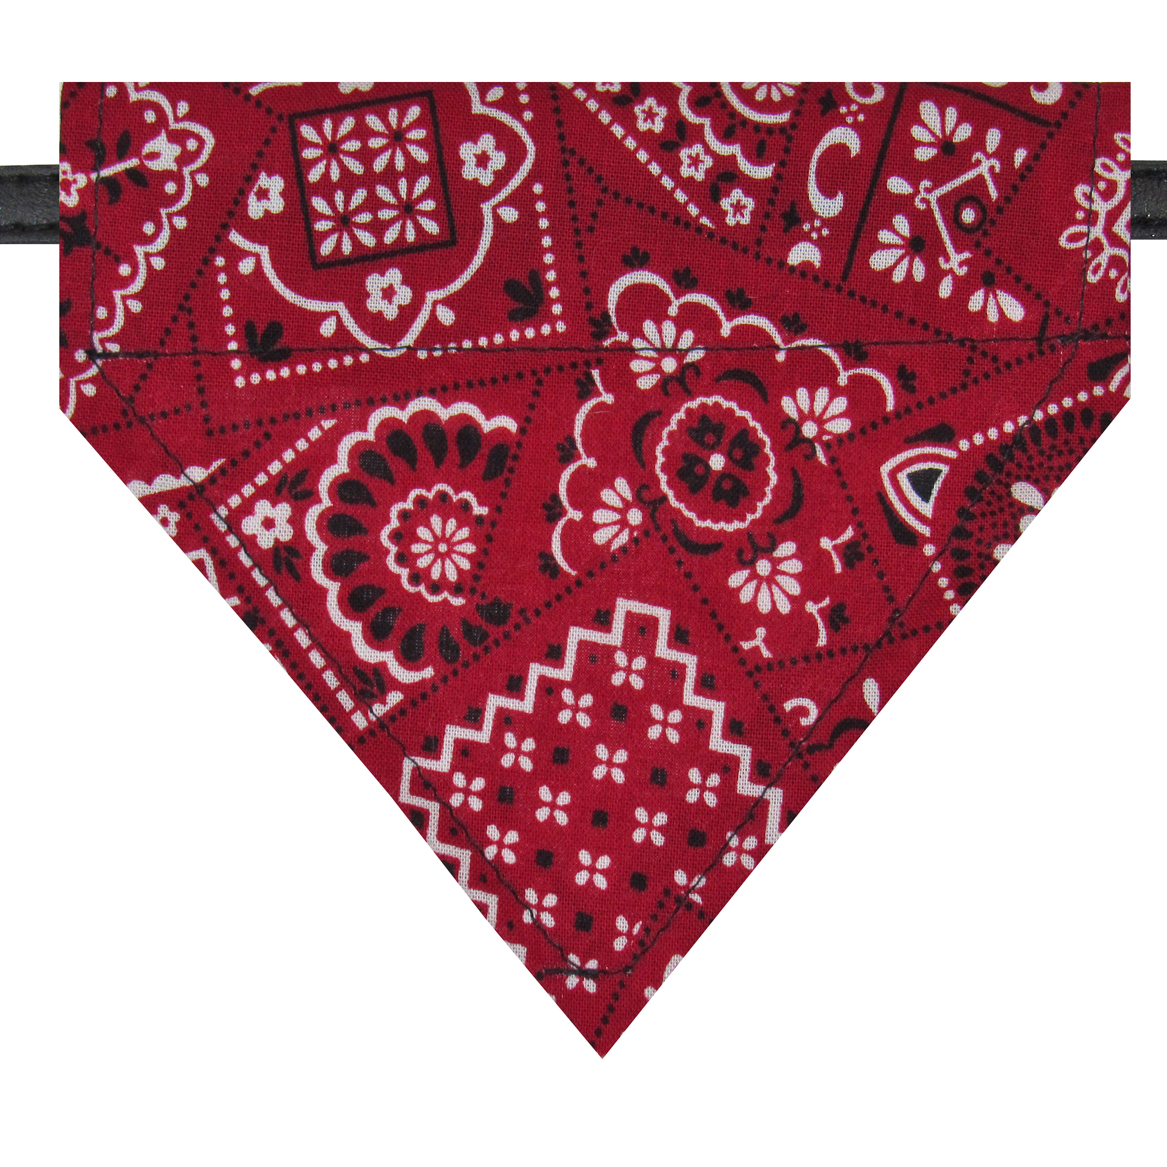 Find great deals on eBay for vintage red handkerchief. Shop with confidence.